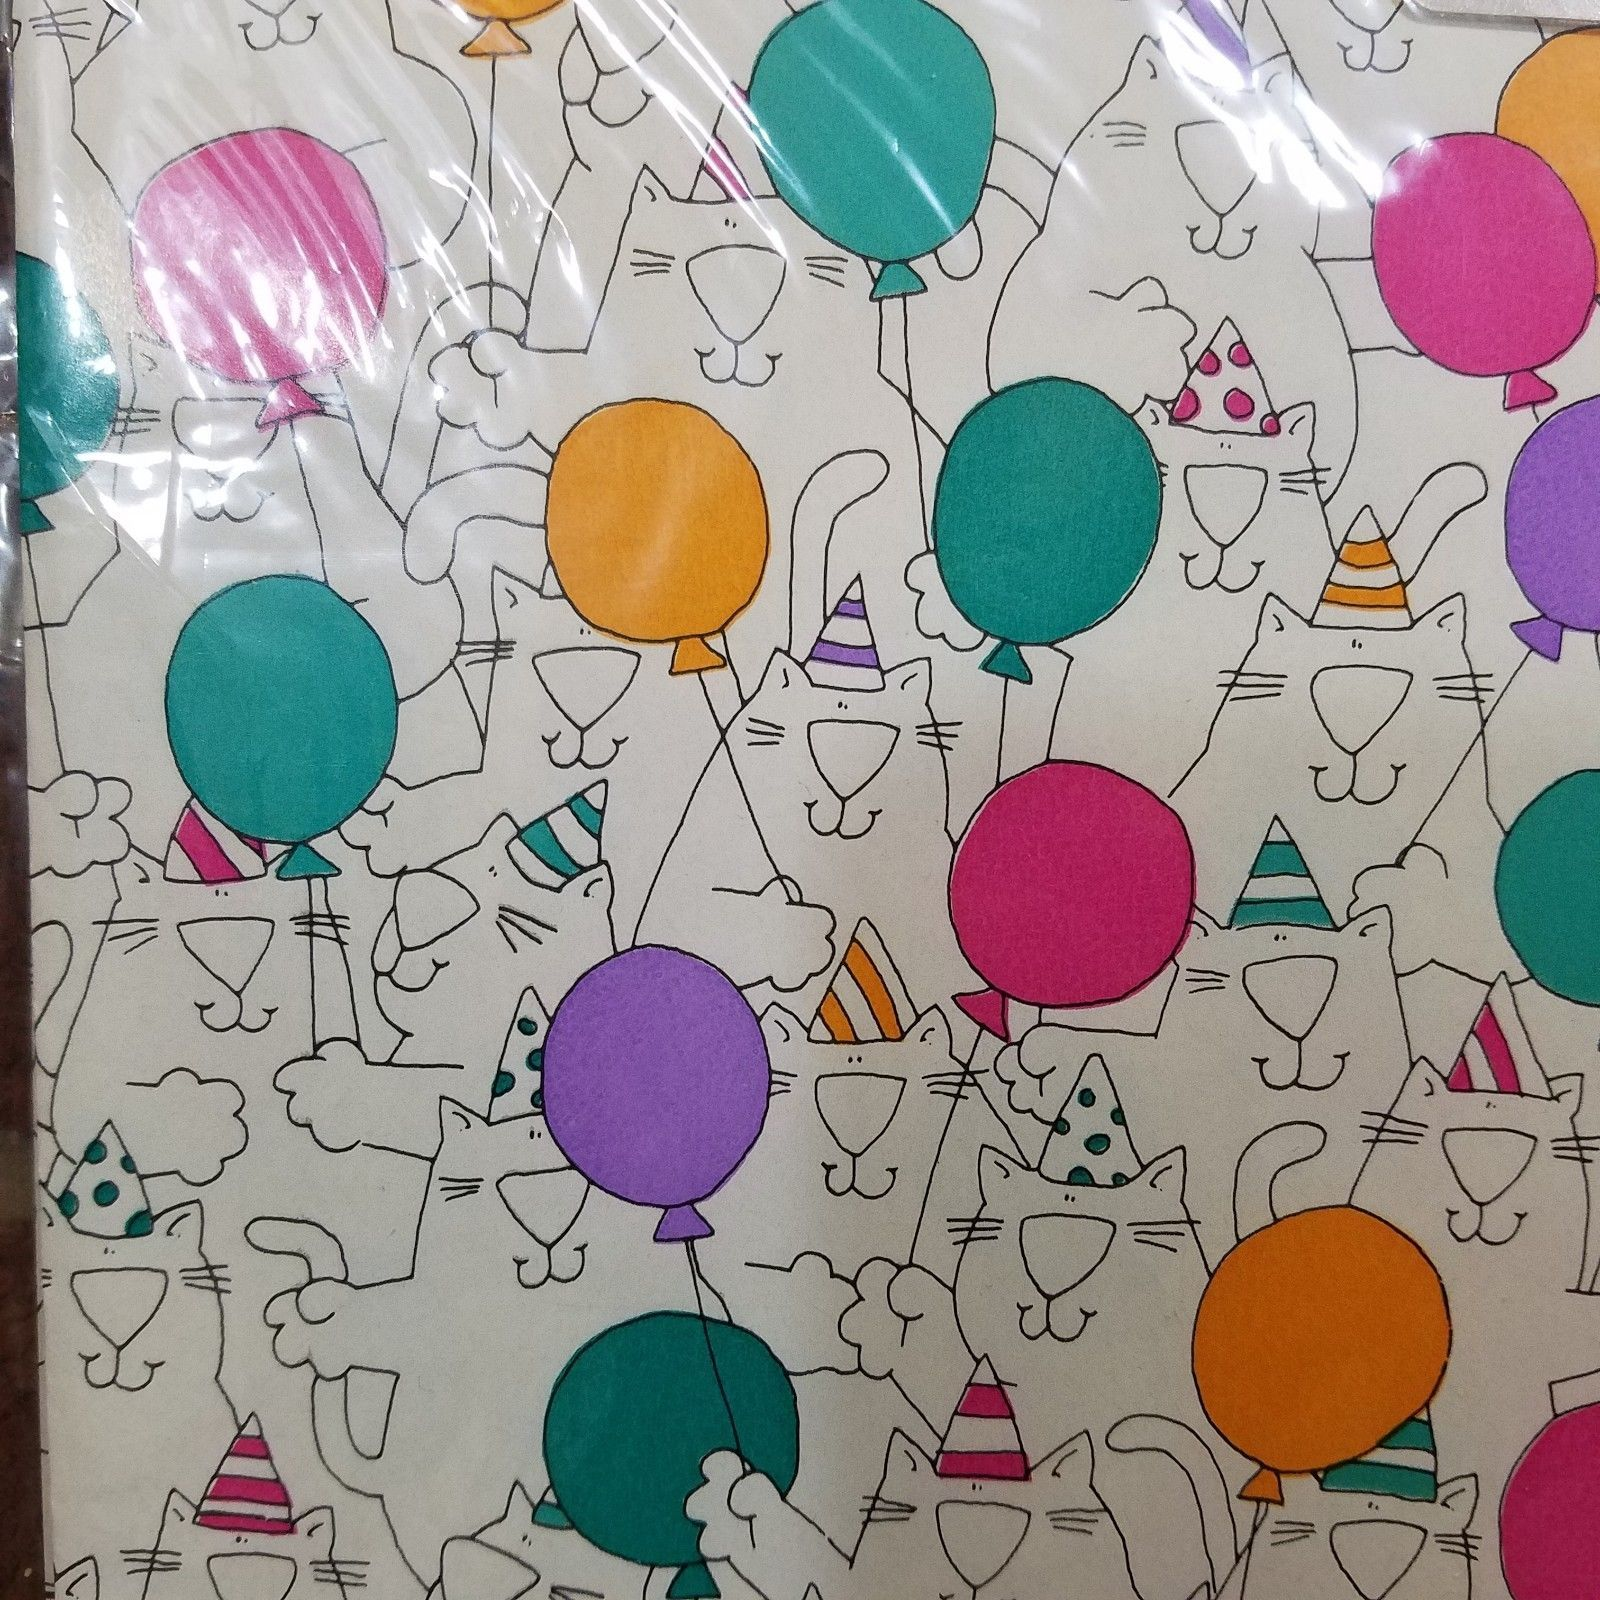 7140058b5 Details about VTG New American Greetings Birthday Cat Balloon ...